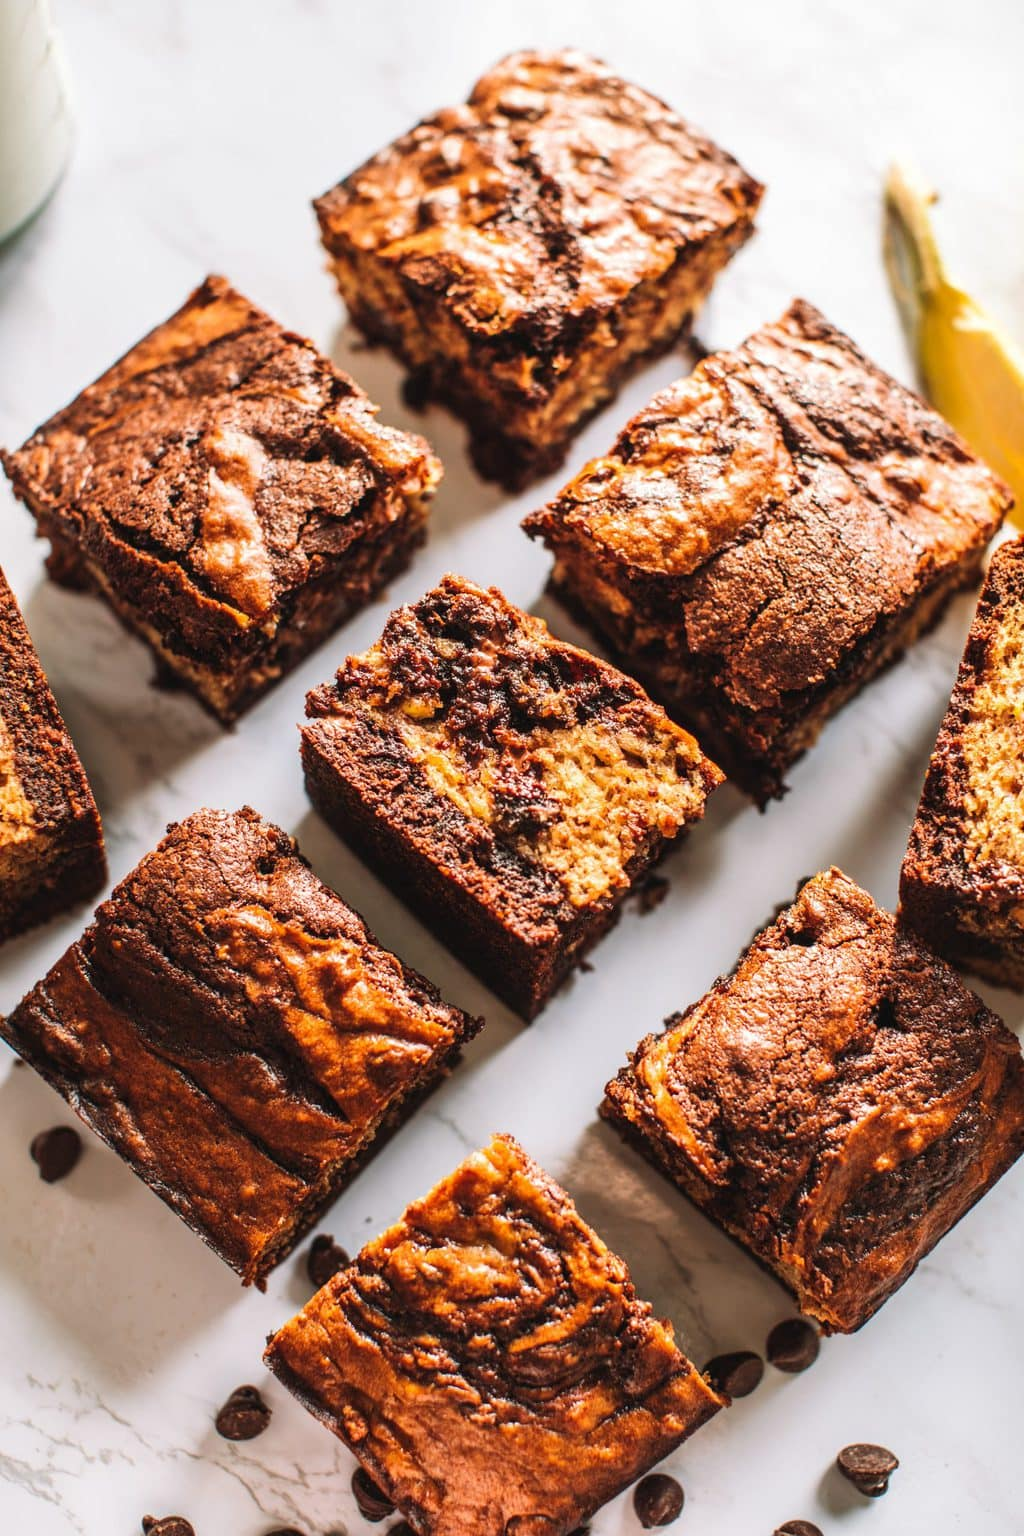 Banana bread brownies sliced into nine squares.